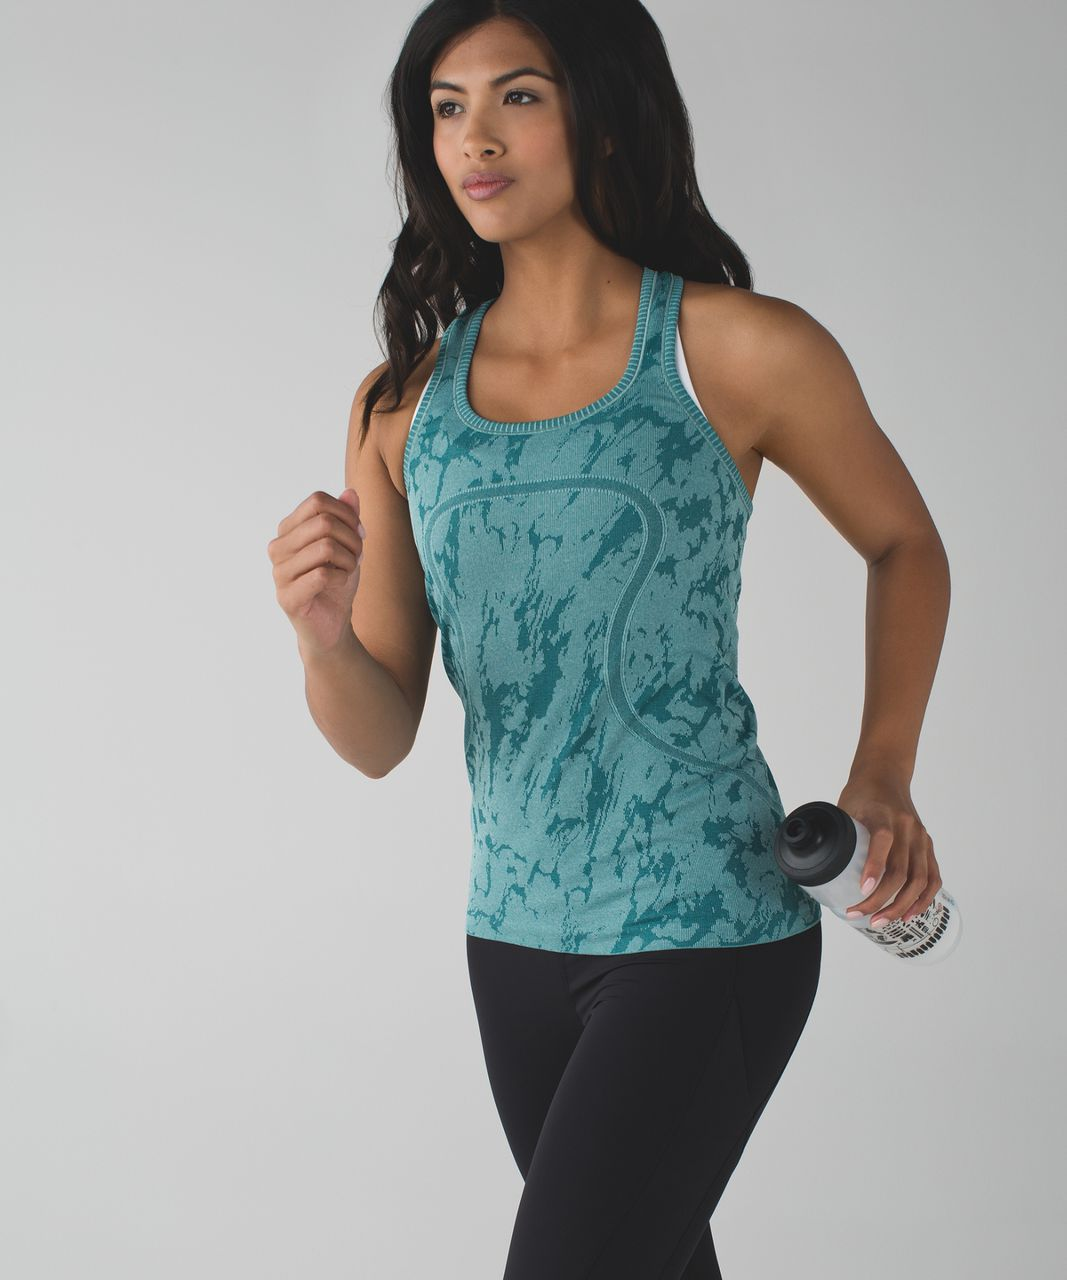 Lululemon Swiftly Tech Racerback - Heathered Forage Teal